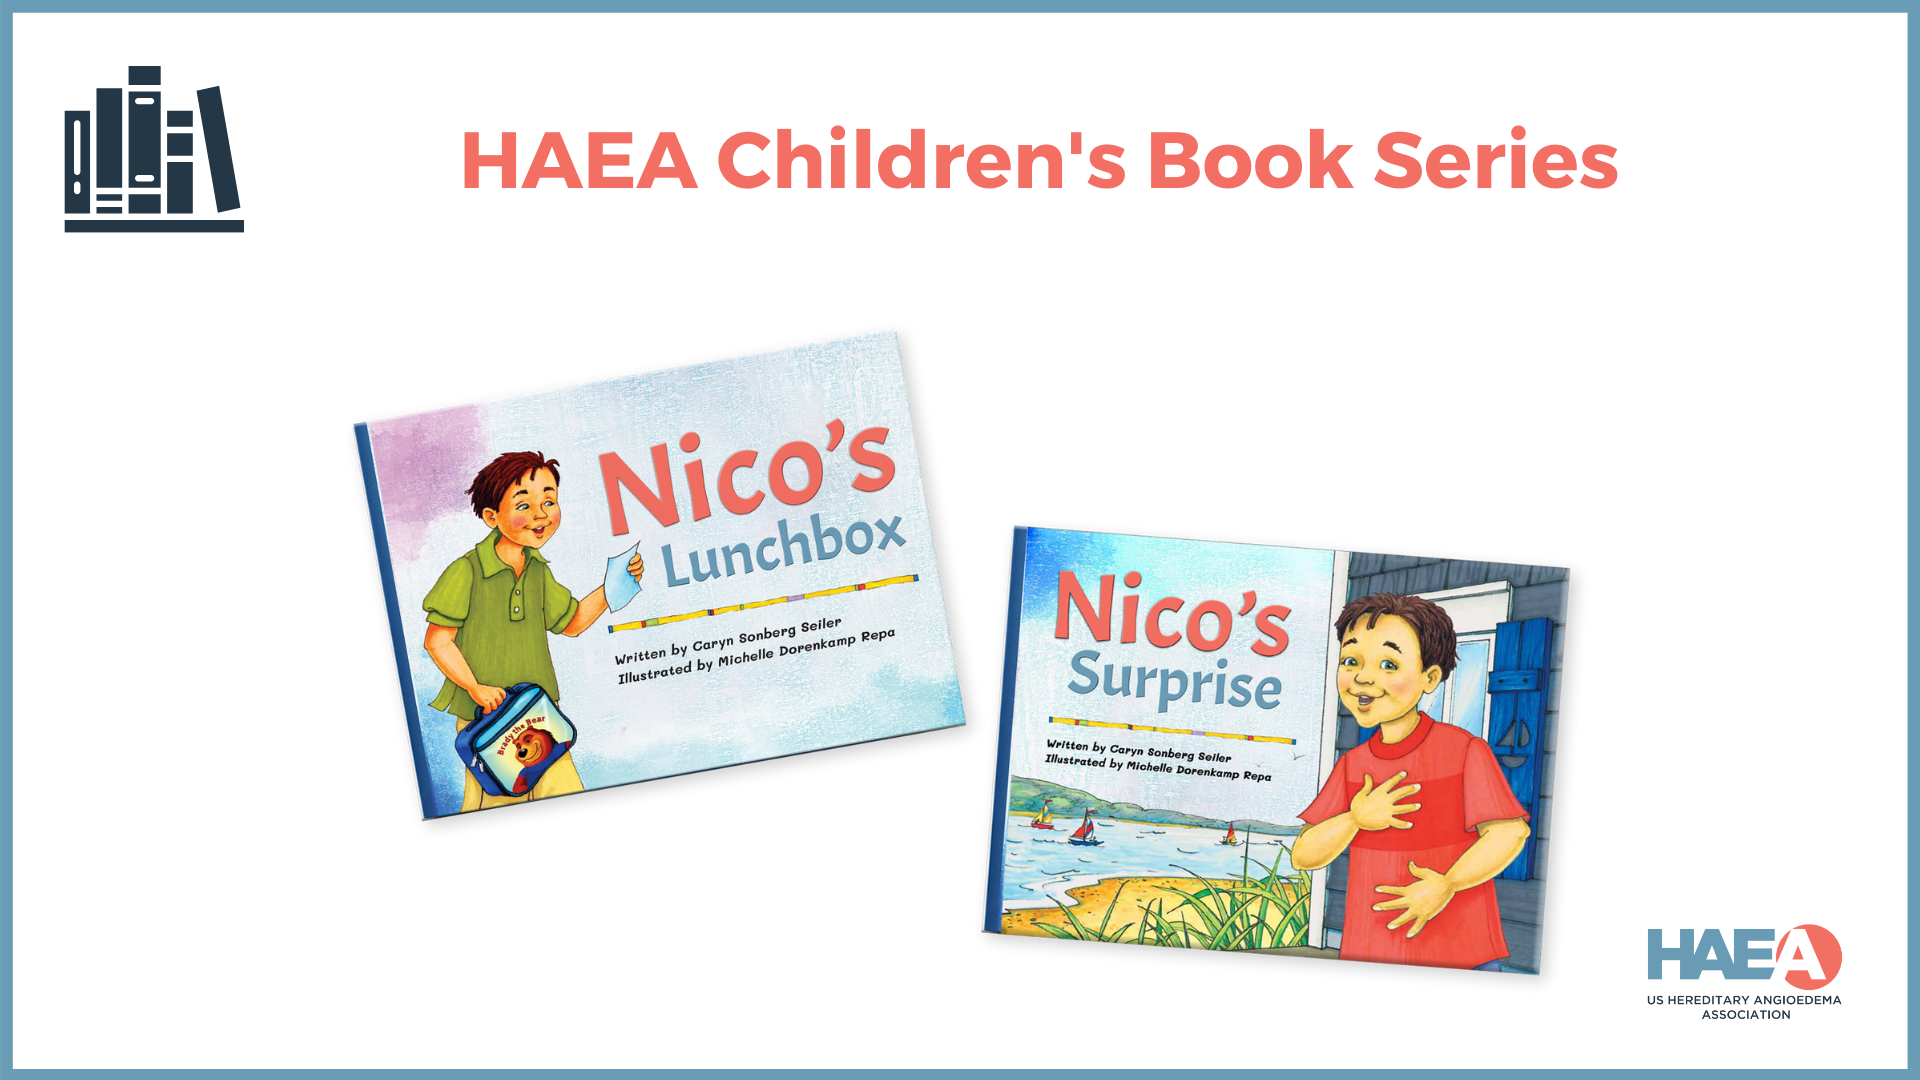 The HAEA Children's Book Series will celebrate the release of its third book in the series on May 16th during the HAEA Virtual Summit Series